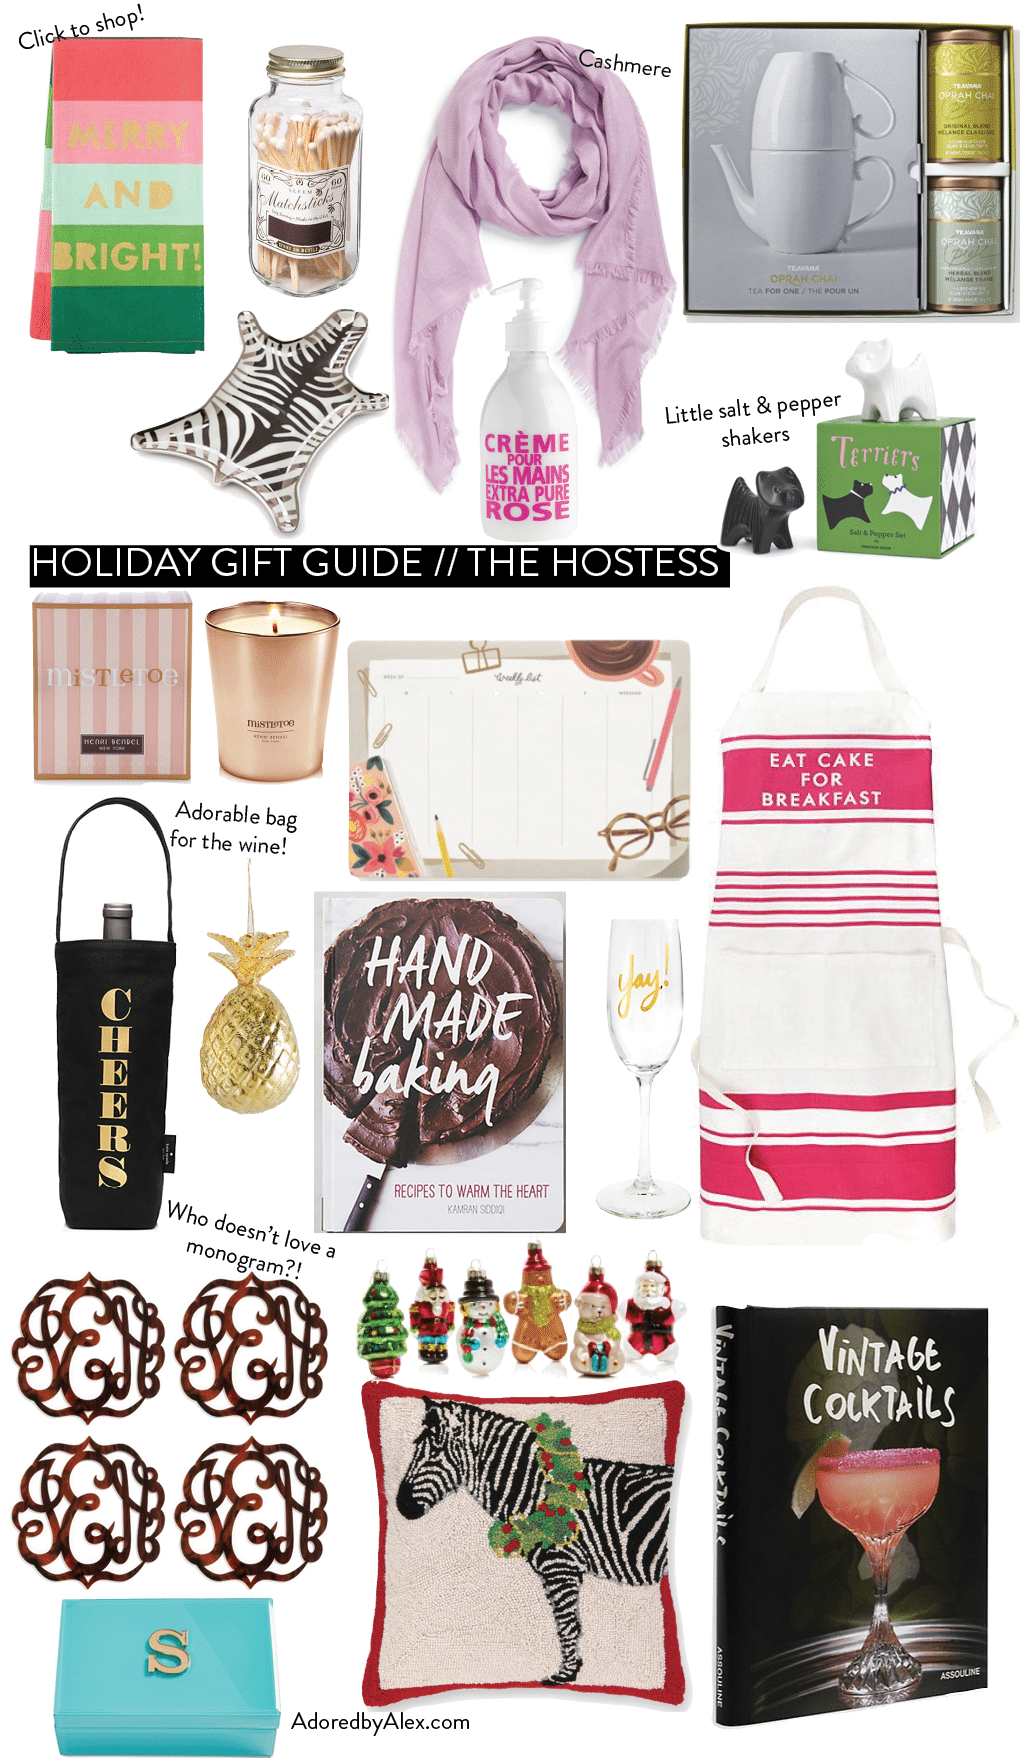 Holiday Gift Guide - Present Ideas For the Hostess